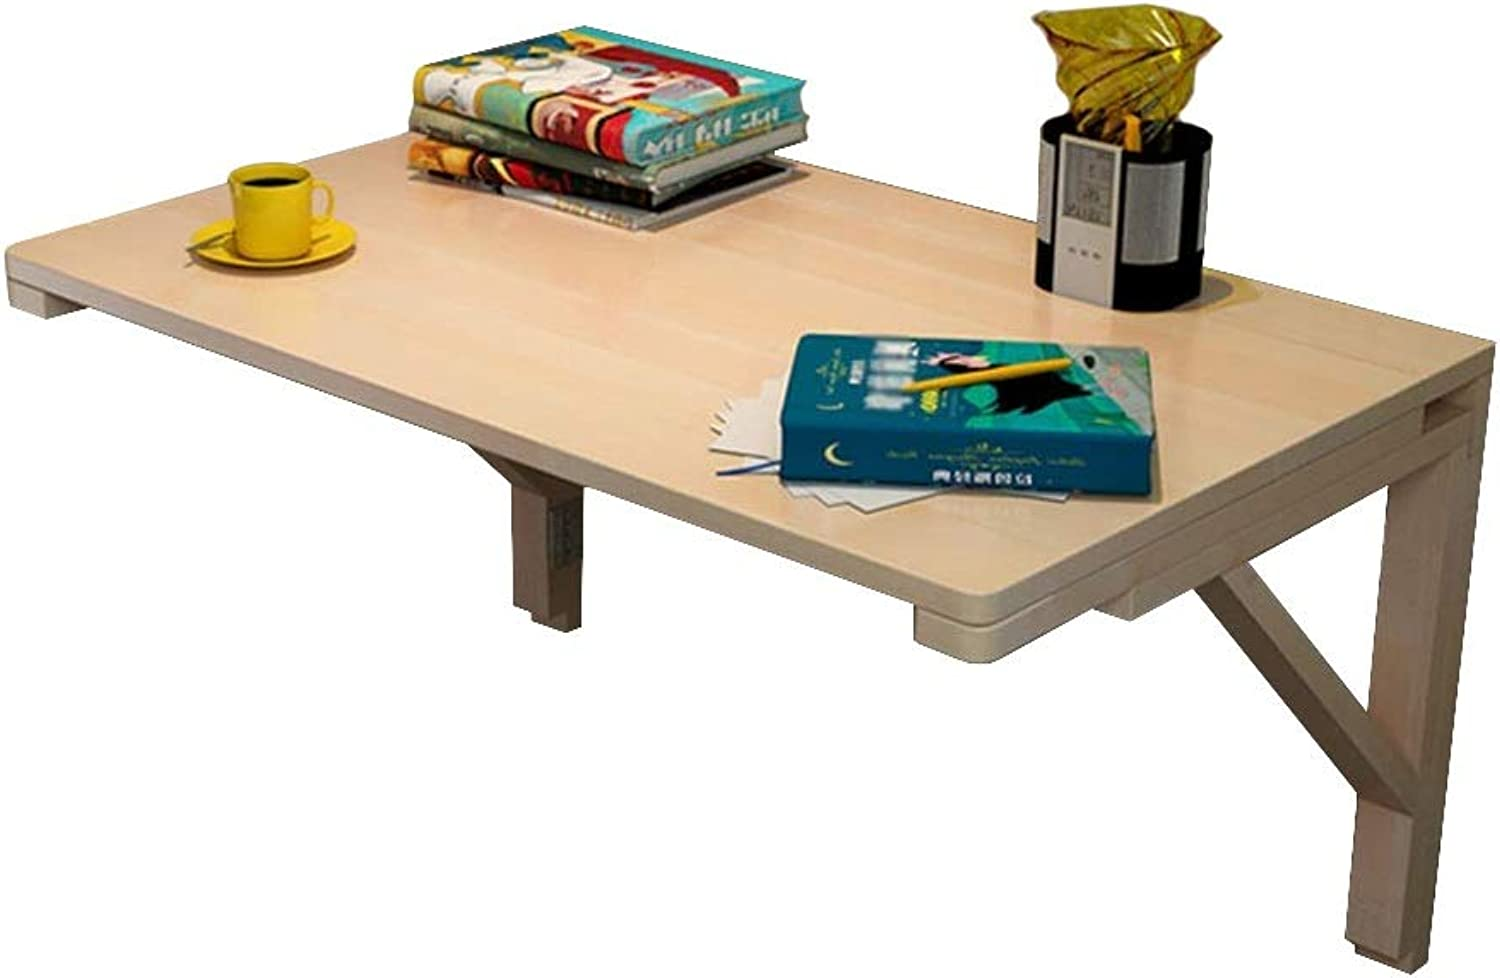 ERRU- Wall-Mounted Folding Table for Office Home Kitchen, Drop-Leaf Dining Table Desk Wooden, Size Optional (Size   50x30cm)